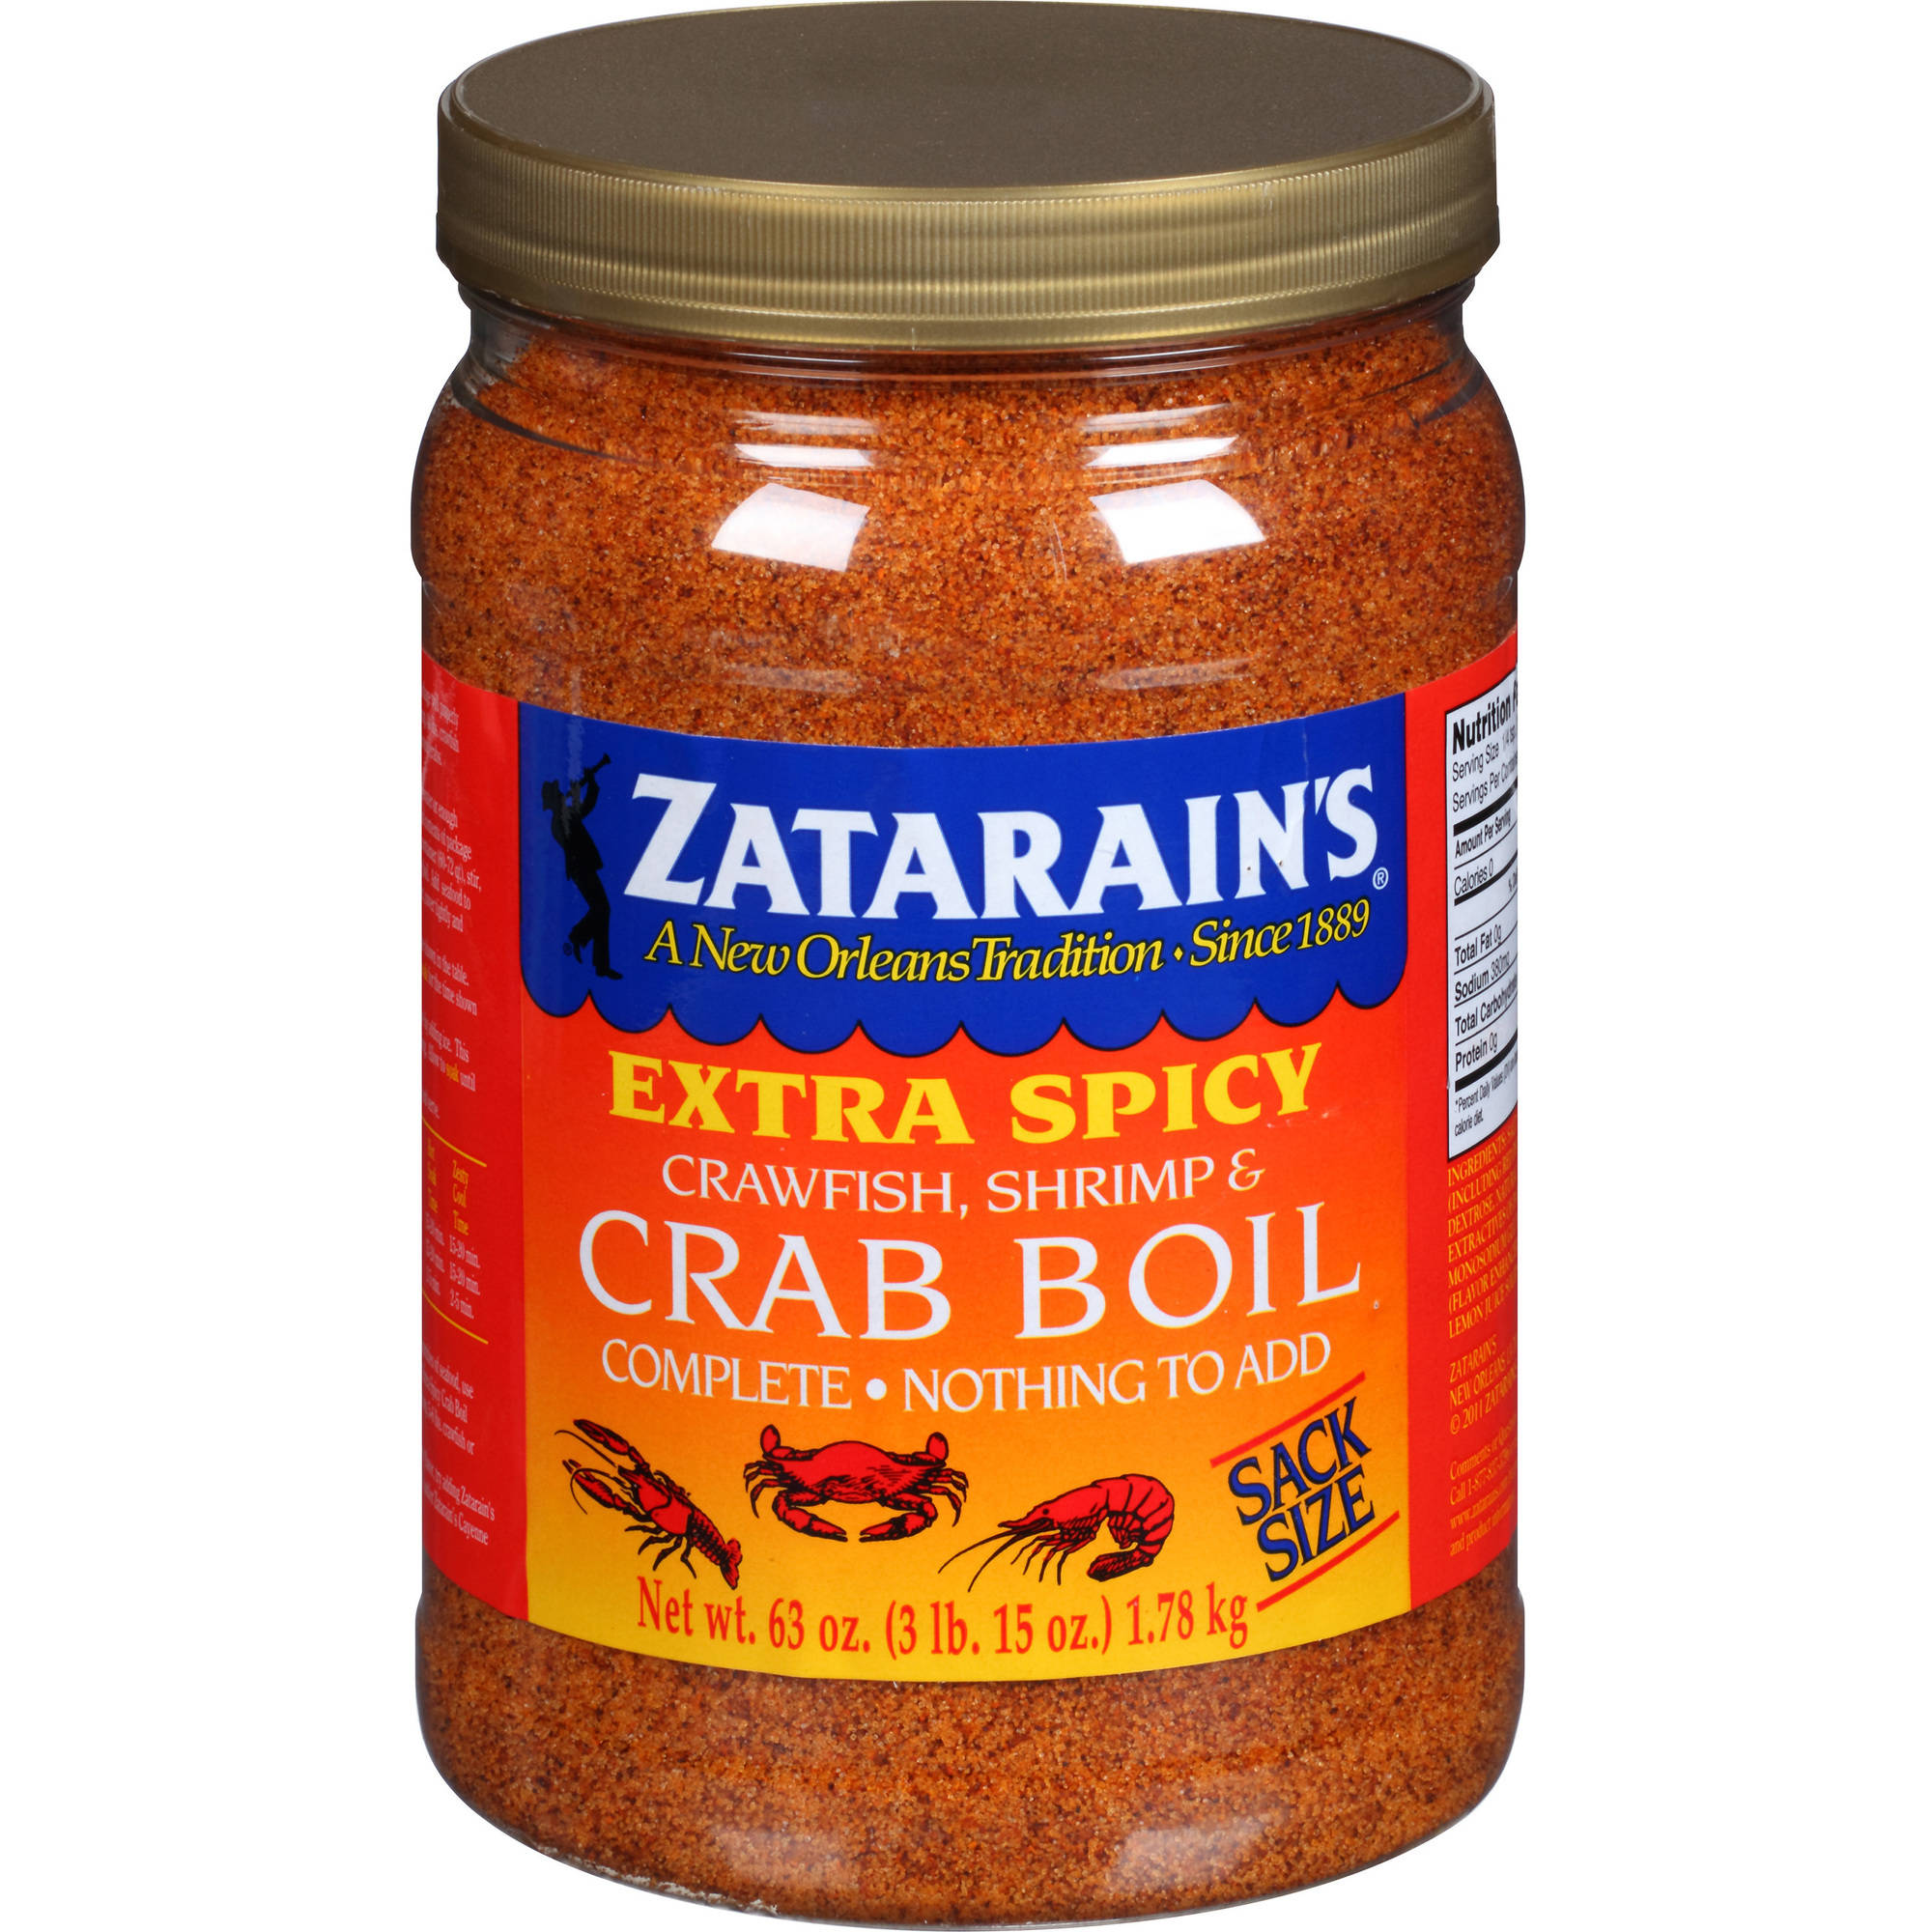 Zatarain's Extra Spicy Crawfish, Shrimp & Crab Boil, 63 oz